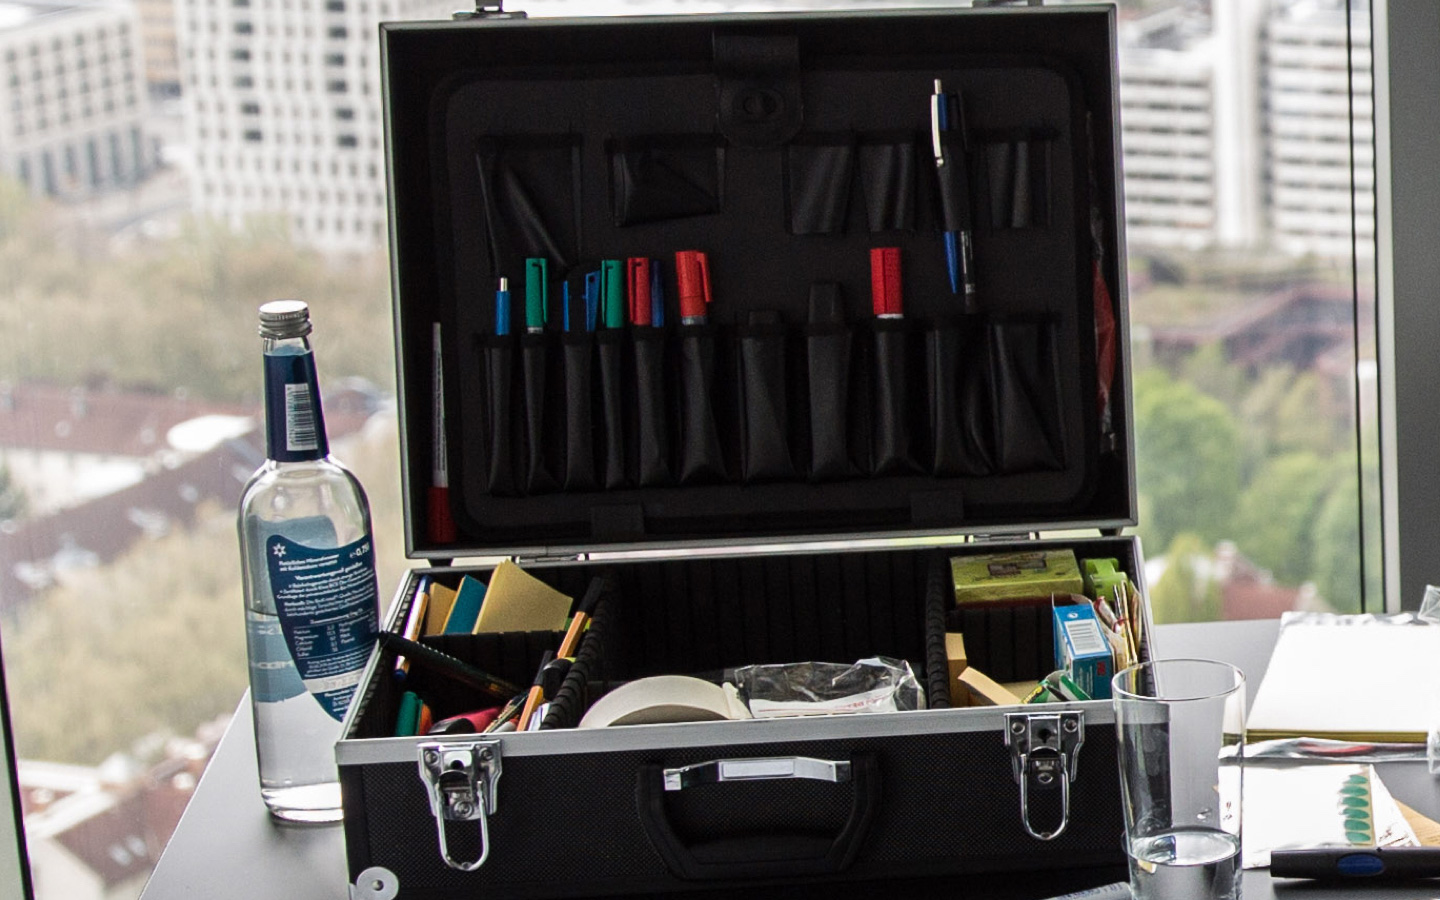 Right tools for the right products – A picture showing my workshop toolbox, full of sharpies and post-its.